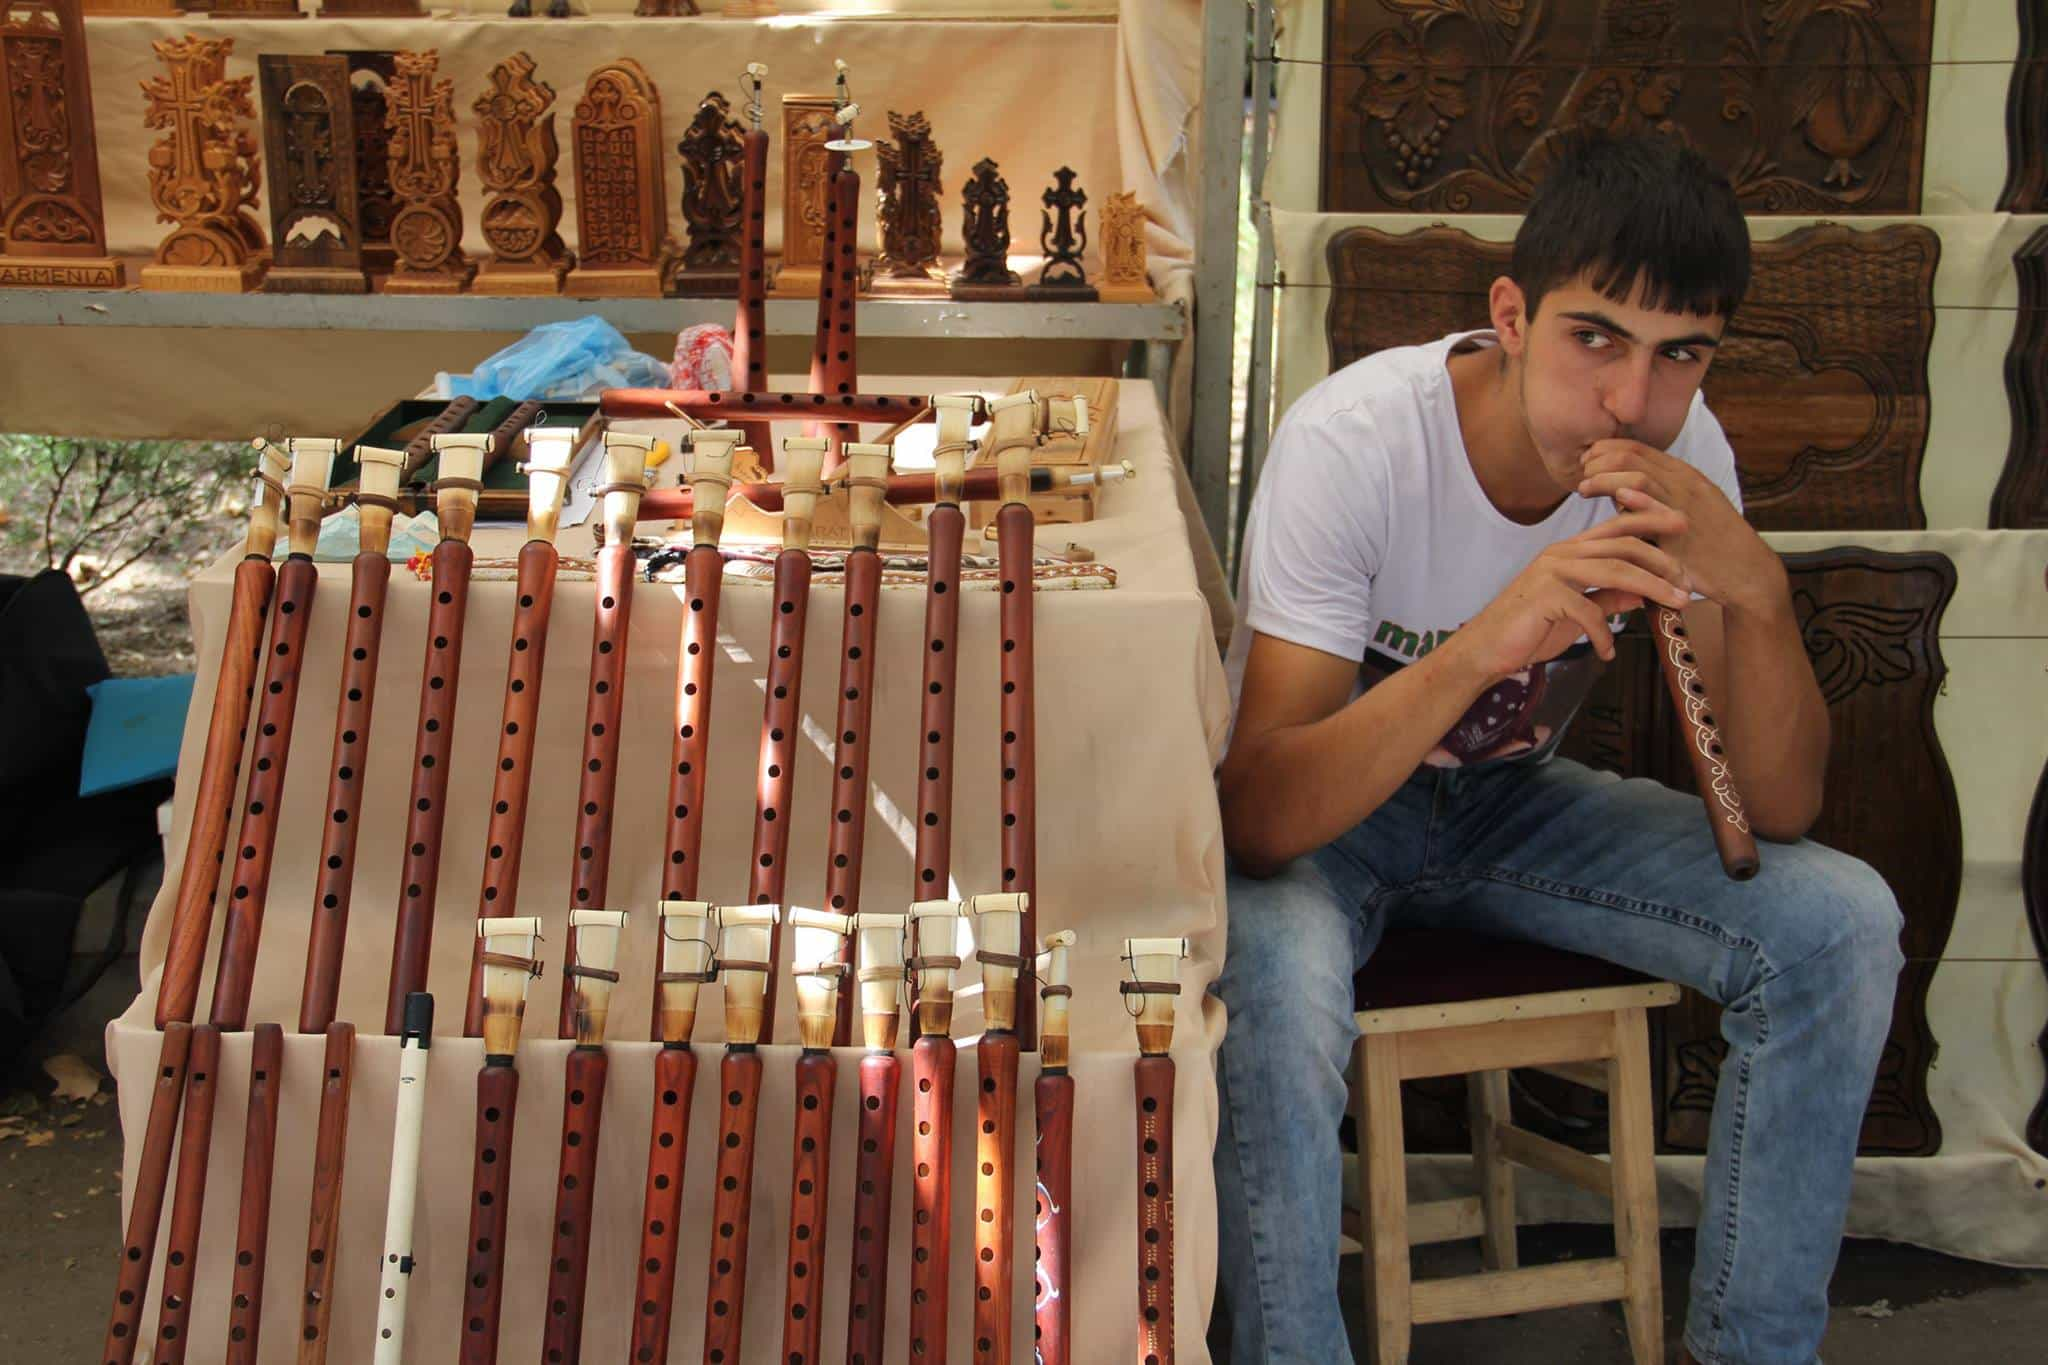 At the Vernissage Flea market in Yerevan, Armenia, a stall selling Armenian duduk flutes made out of apricot wood.